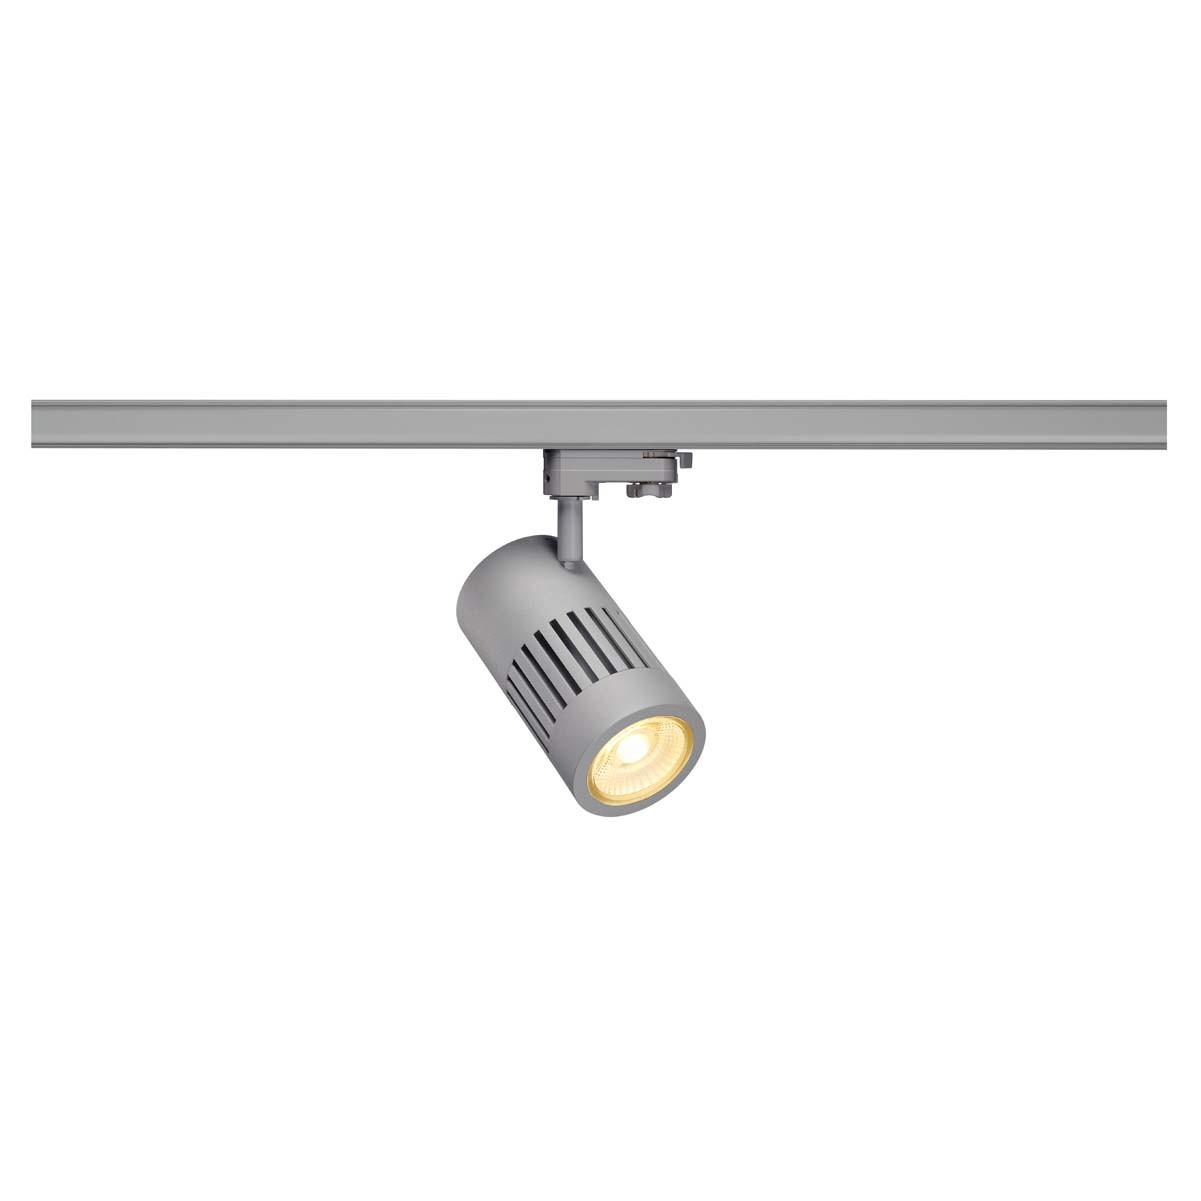 SLV 176084 STRUCTEC LED 30W, round, silver, rich colour, 36° incl. 3-phase Adapter